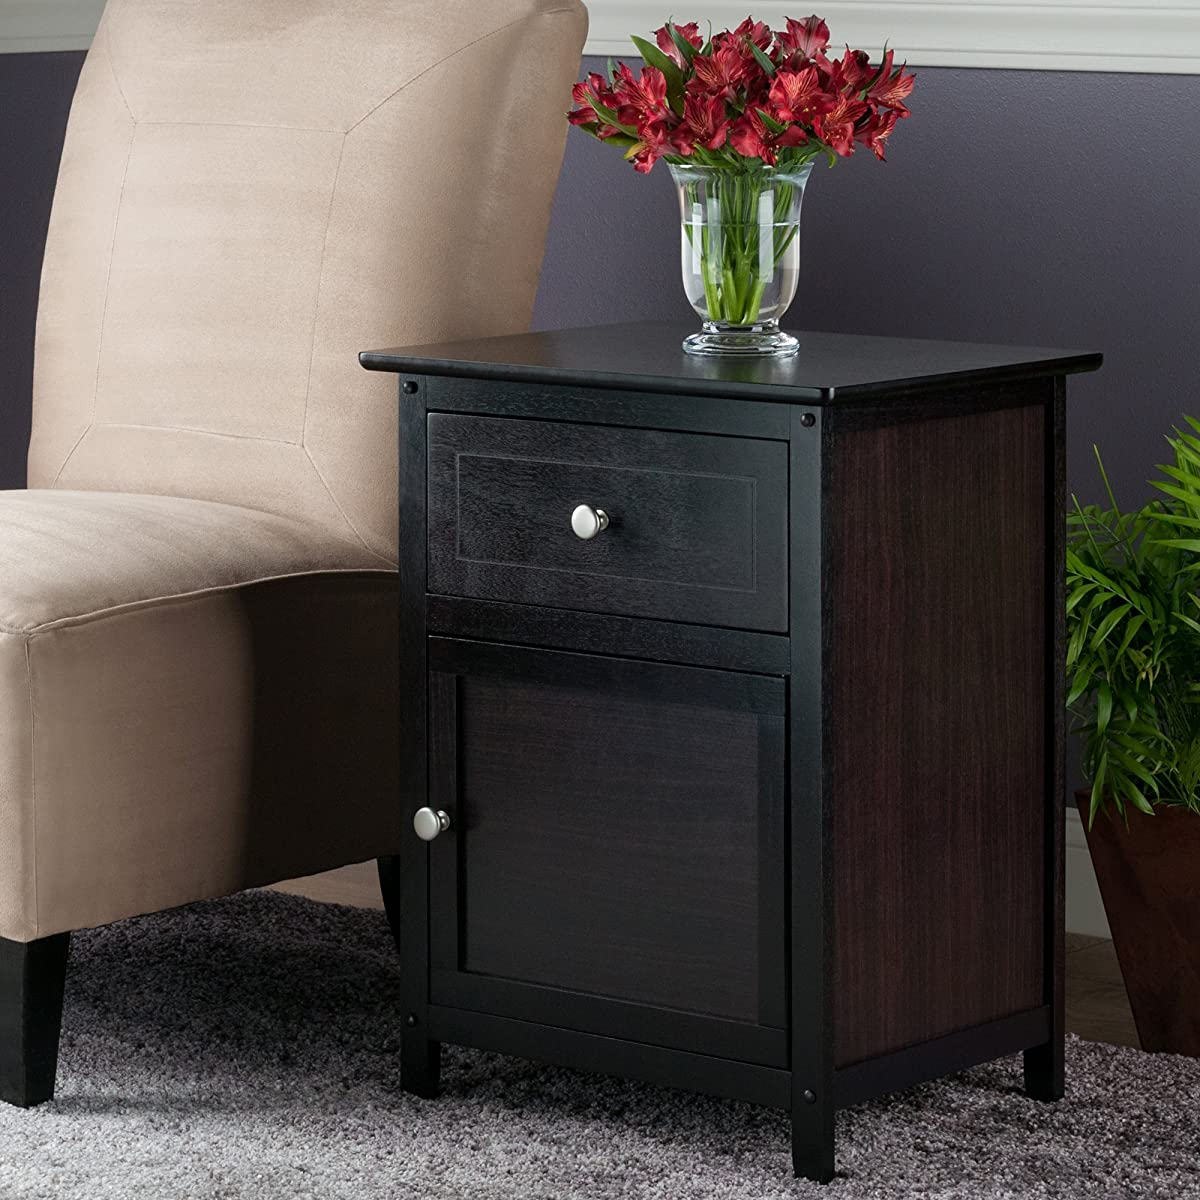 Winsome Wood Beechwood End/Accent Table, Espresso